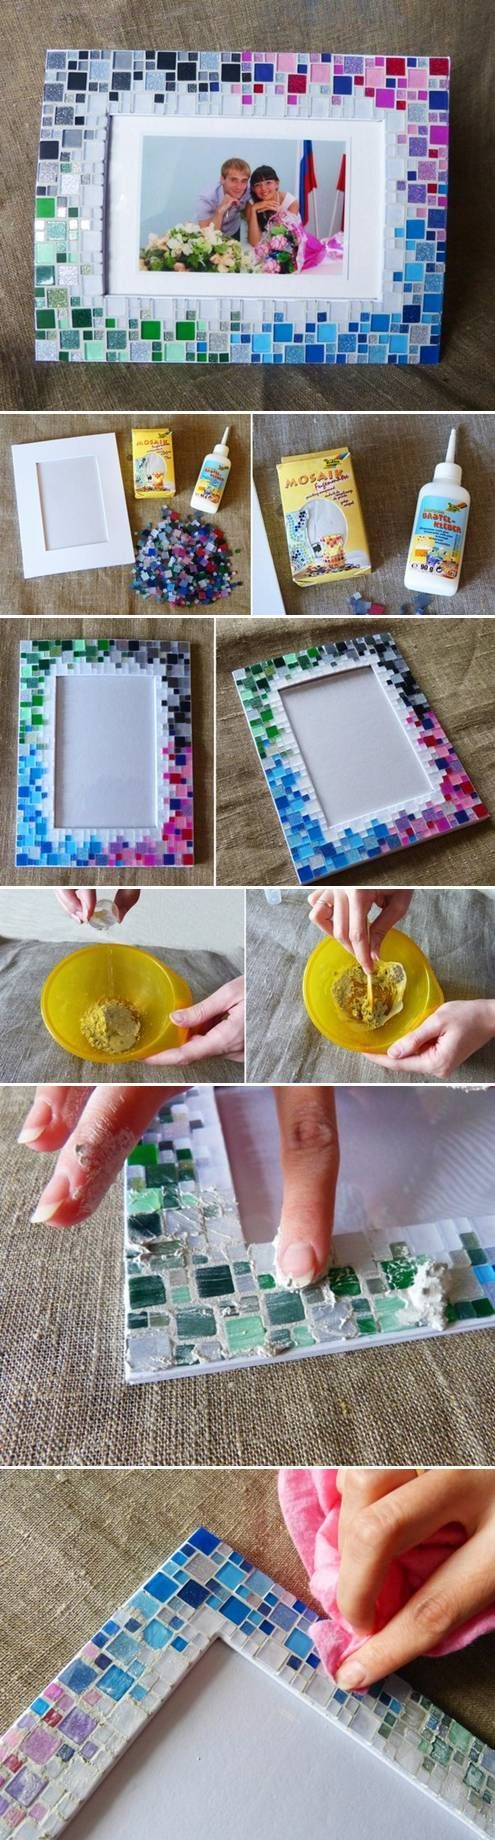 ideas for mosaic projects | ... instructions, crafts, do it yourself, diy website, art project ideas